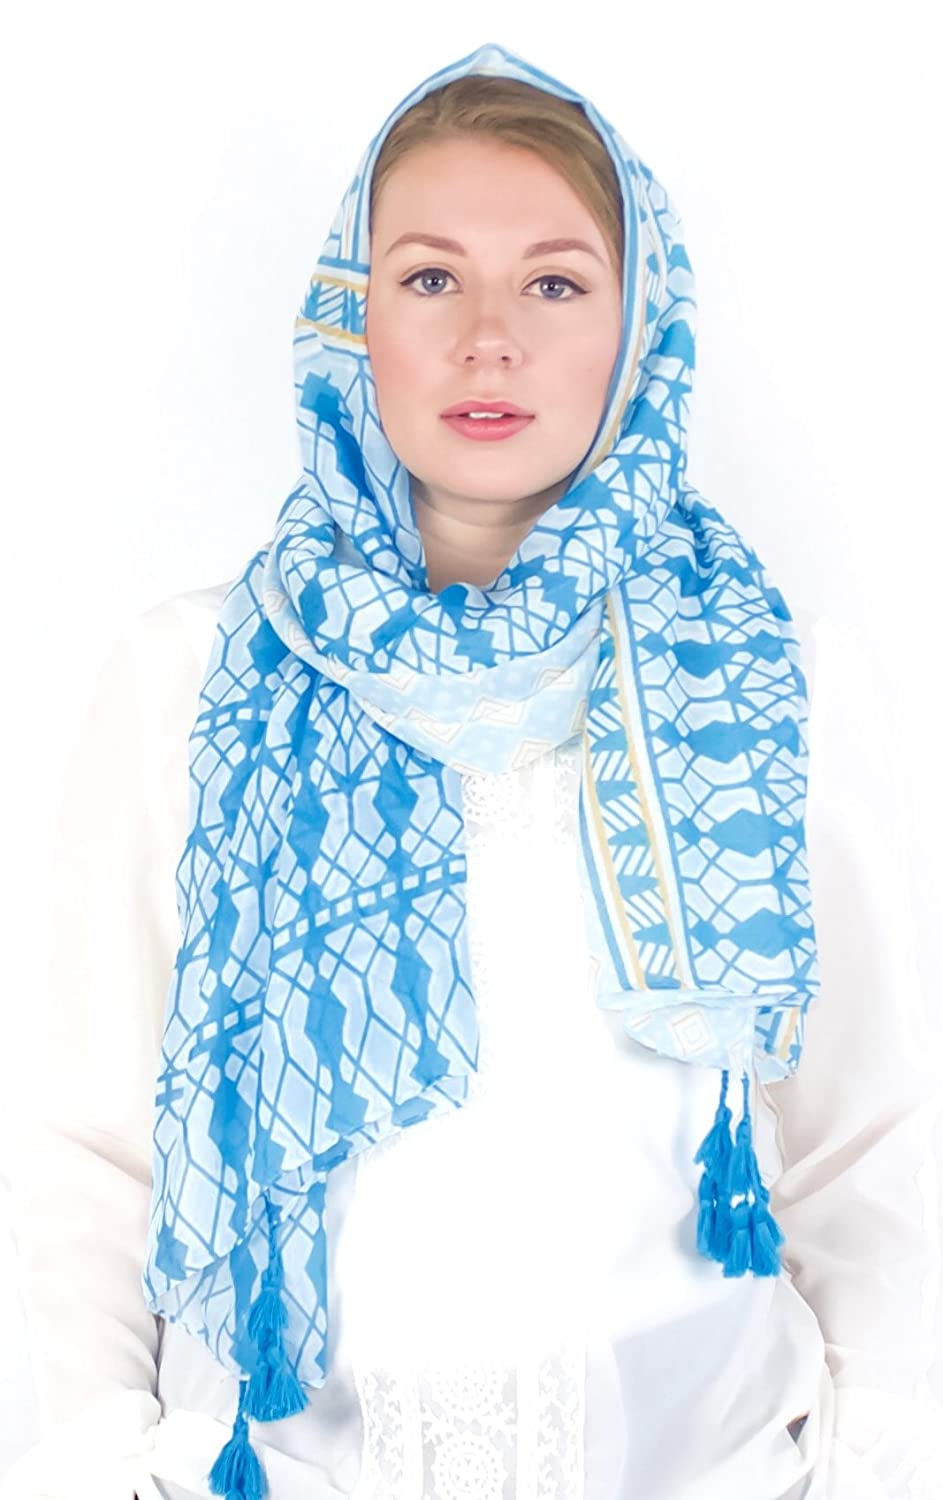 ÉCHARPE Women's Soft Scarf/Hijab with Tassels